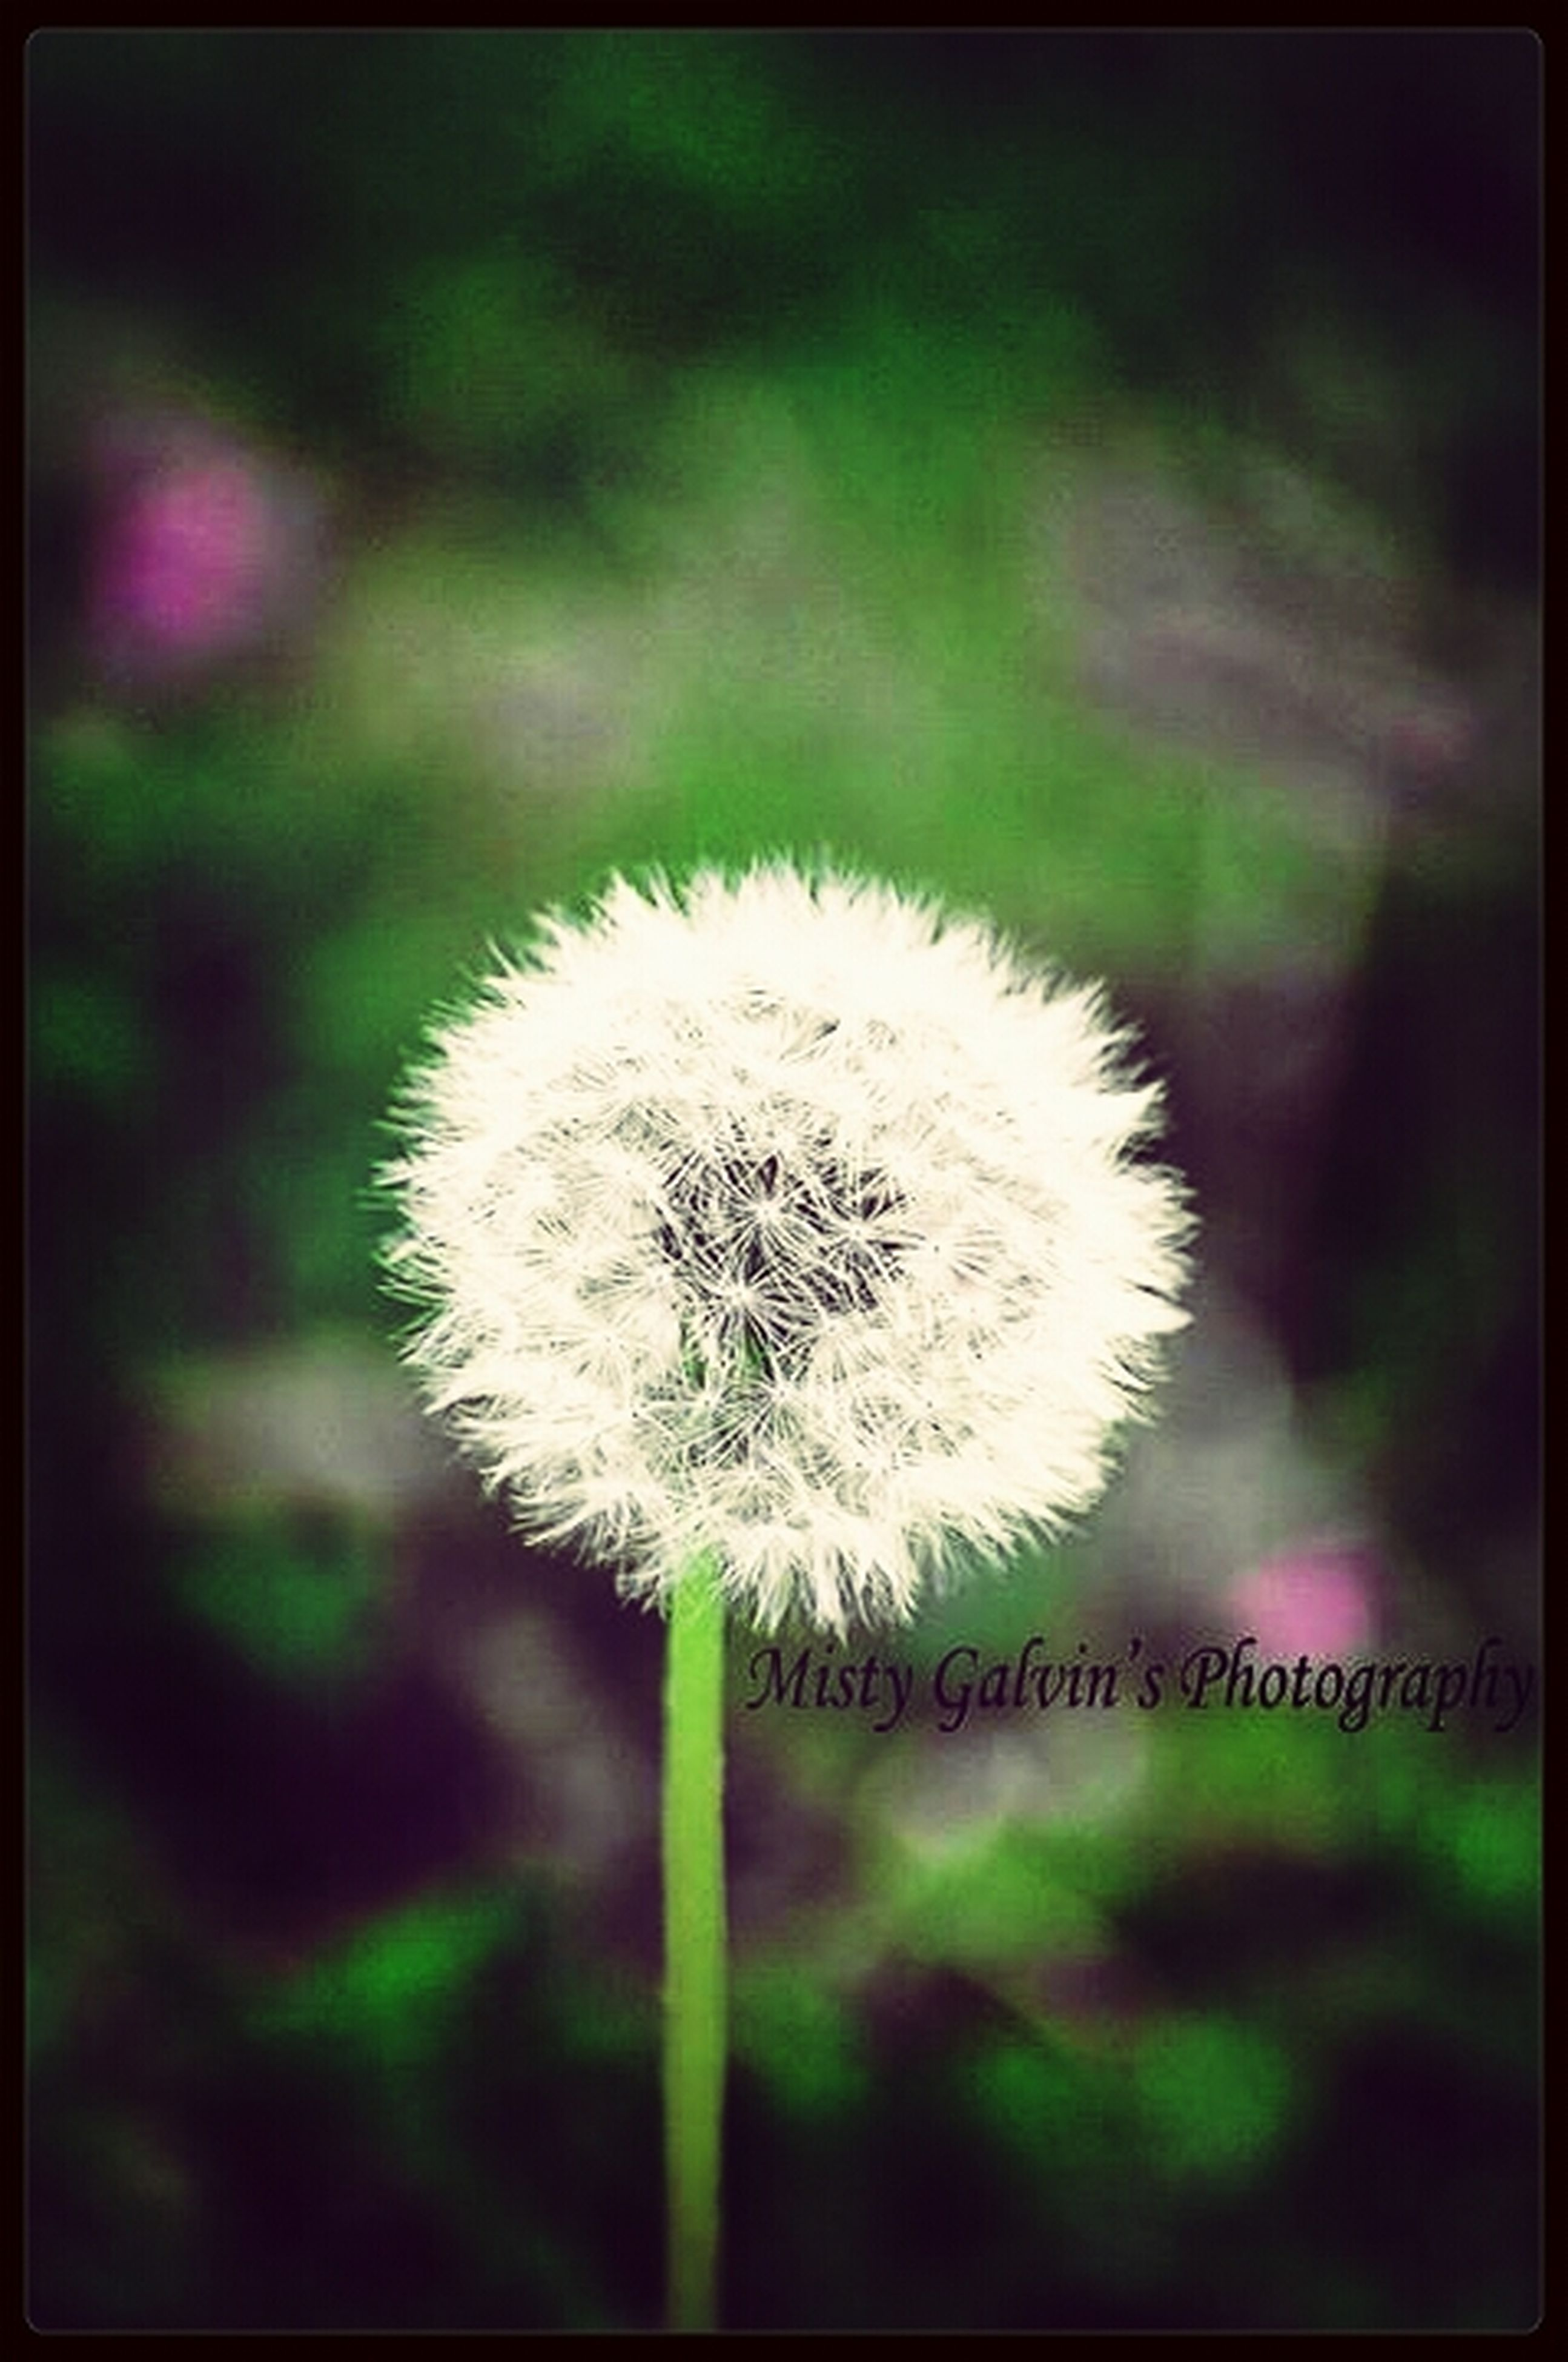 dandelion, flower, fragility, growth, freshness, flower head, focus on foreground, close-up, nature, single flower, beauty in nature, stem, softness, uncultivated, wildflower, white color, plant, dandelion seed, field, day